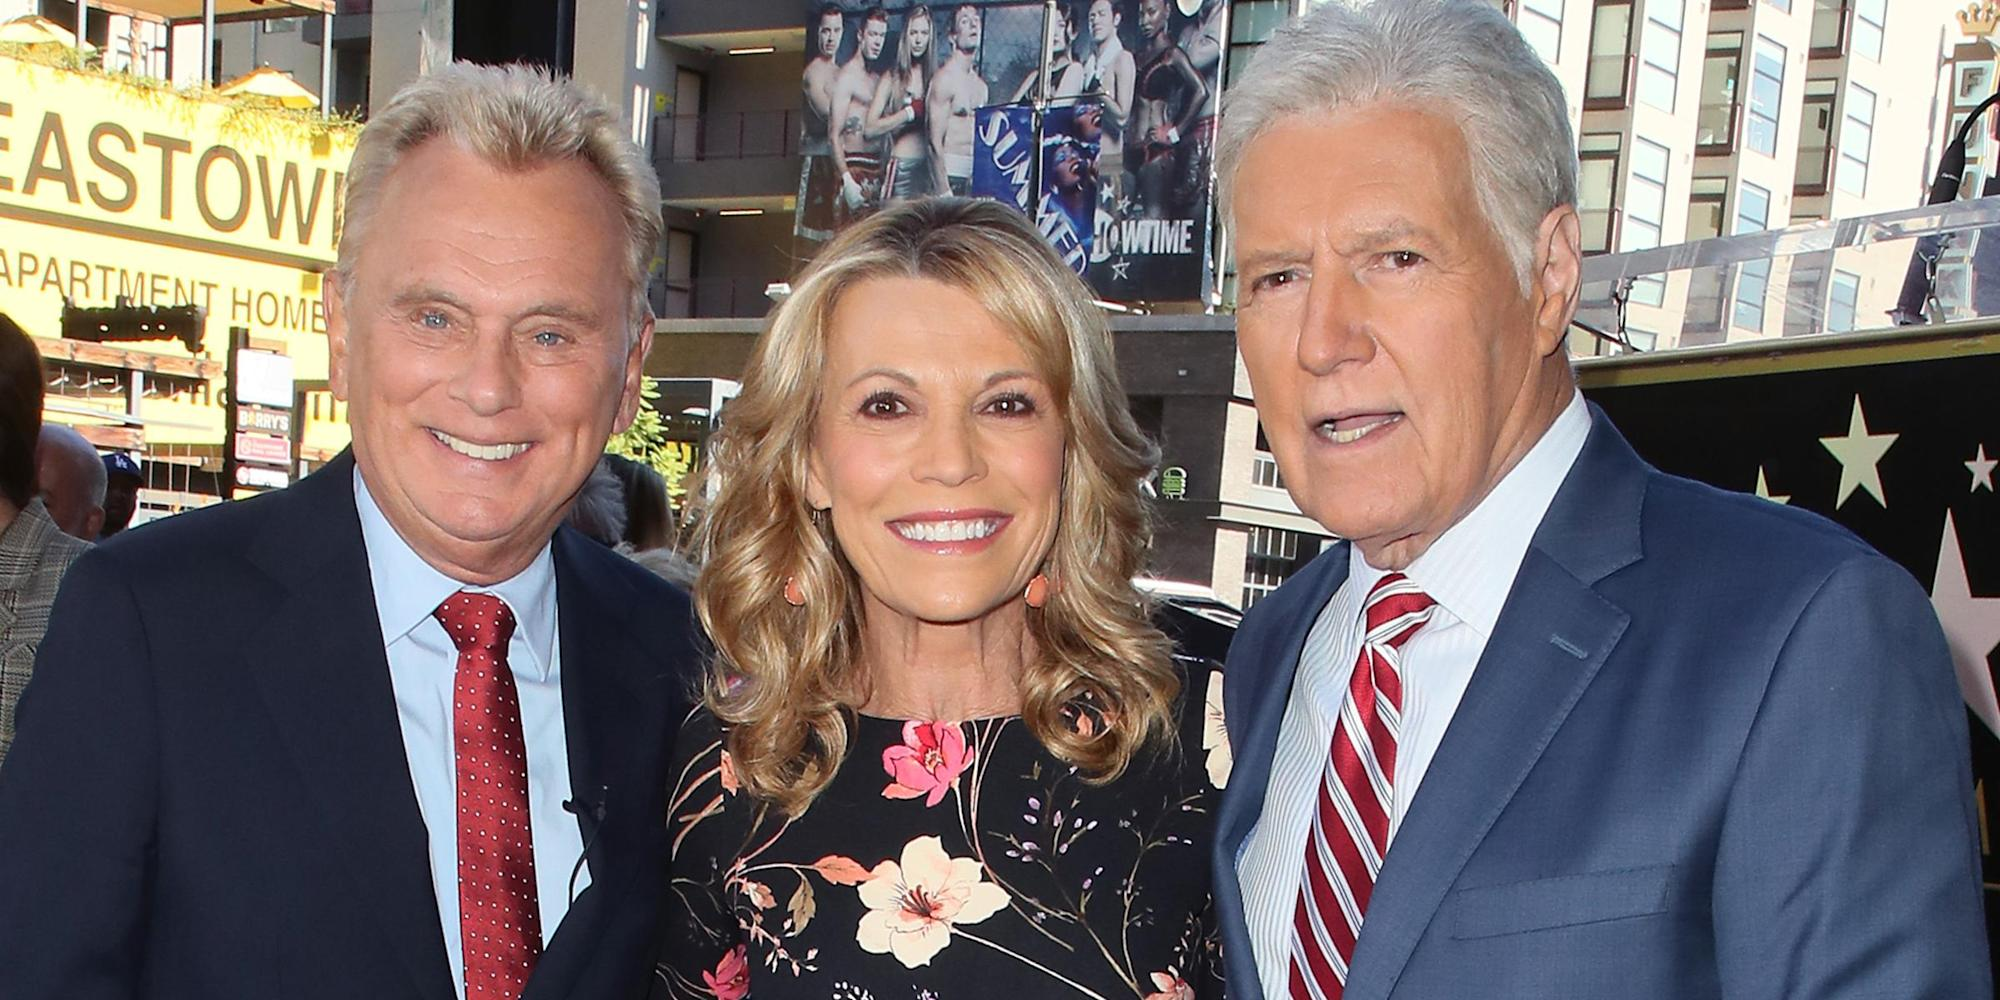 Pat Sajak and Vanna White remember Alex Trebek: 'He is just part of the family'